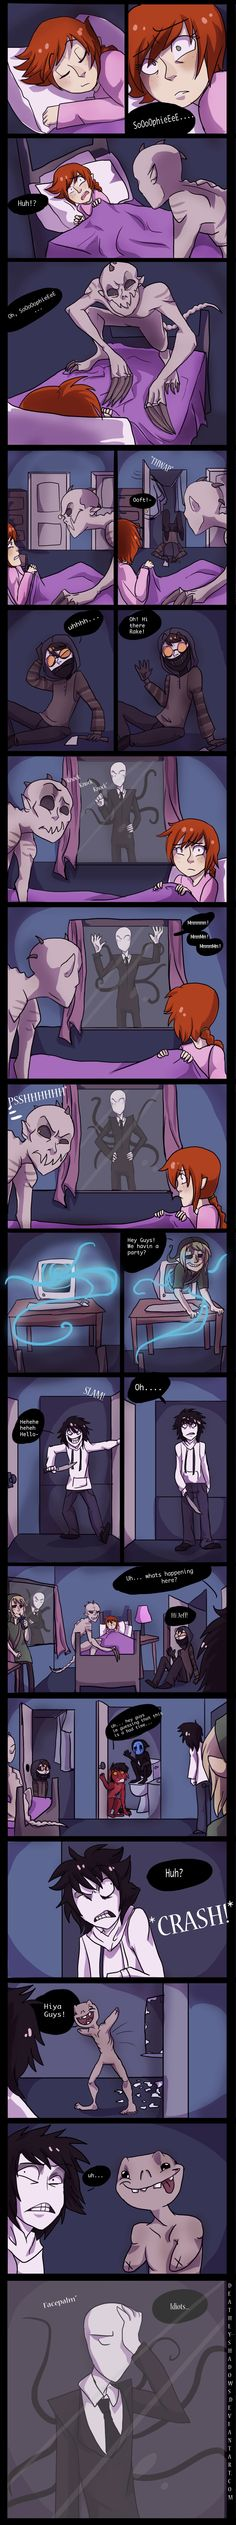 Creepypasta - comic